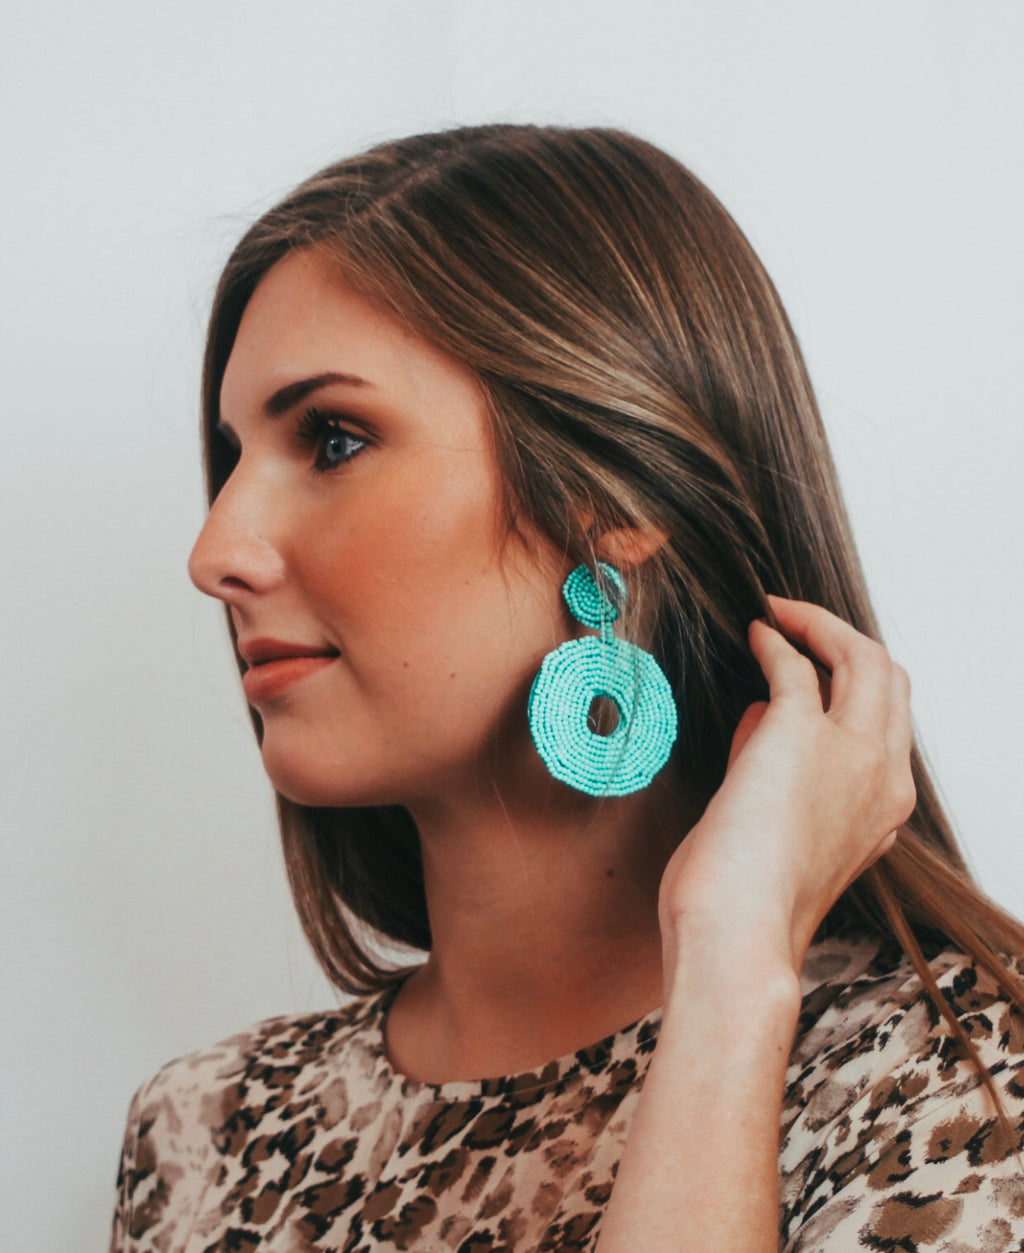 Turquoise disc earrings - Magnolia Doll